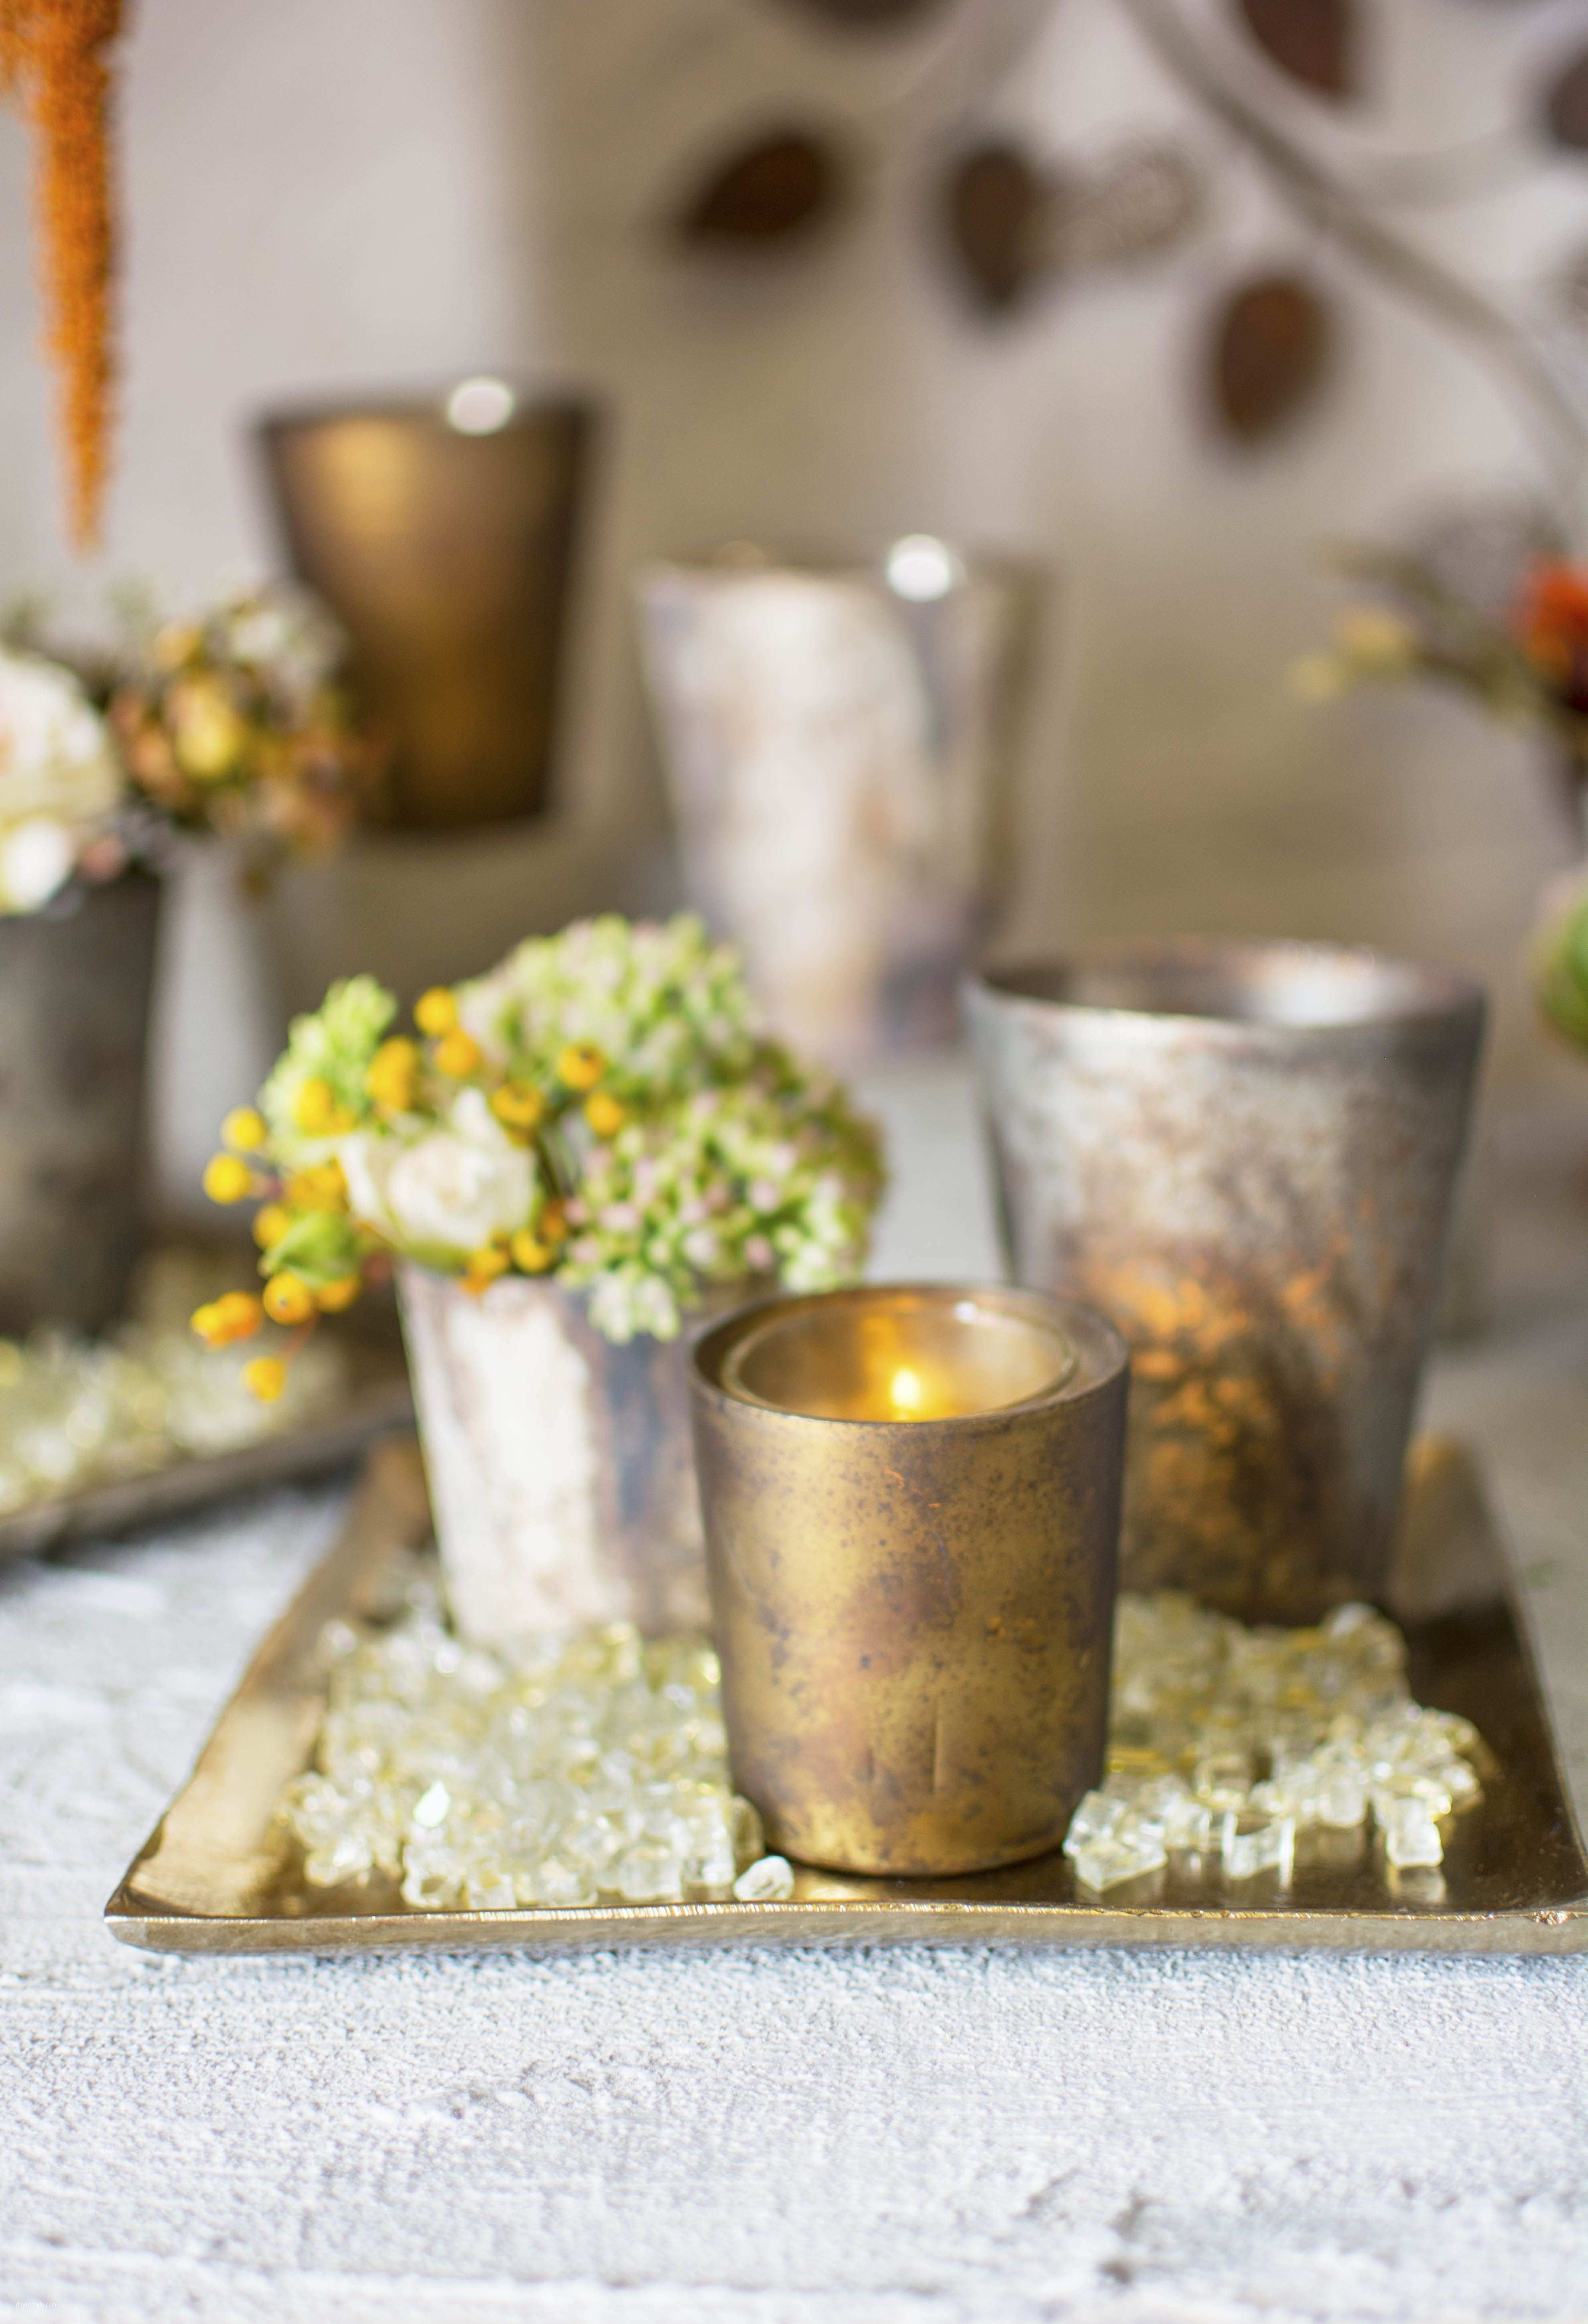 Gold Glitter Vase Of Gold Mercury Glass Vases Luxury Neutral Gold Votive Candles From for Gold Mercury Glass Vases Luxury Neutral Gold Votive Candles From Rustic Mercury Glass Votive Candle